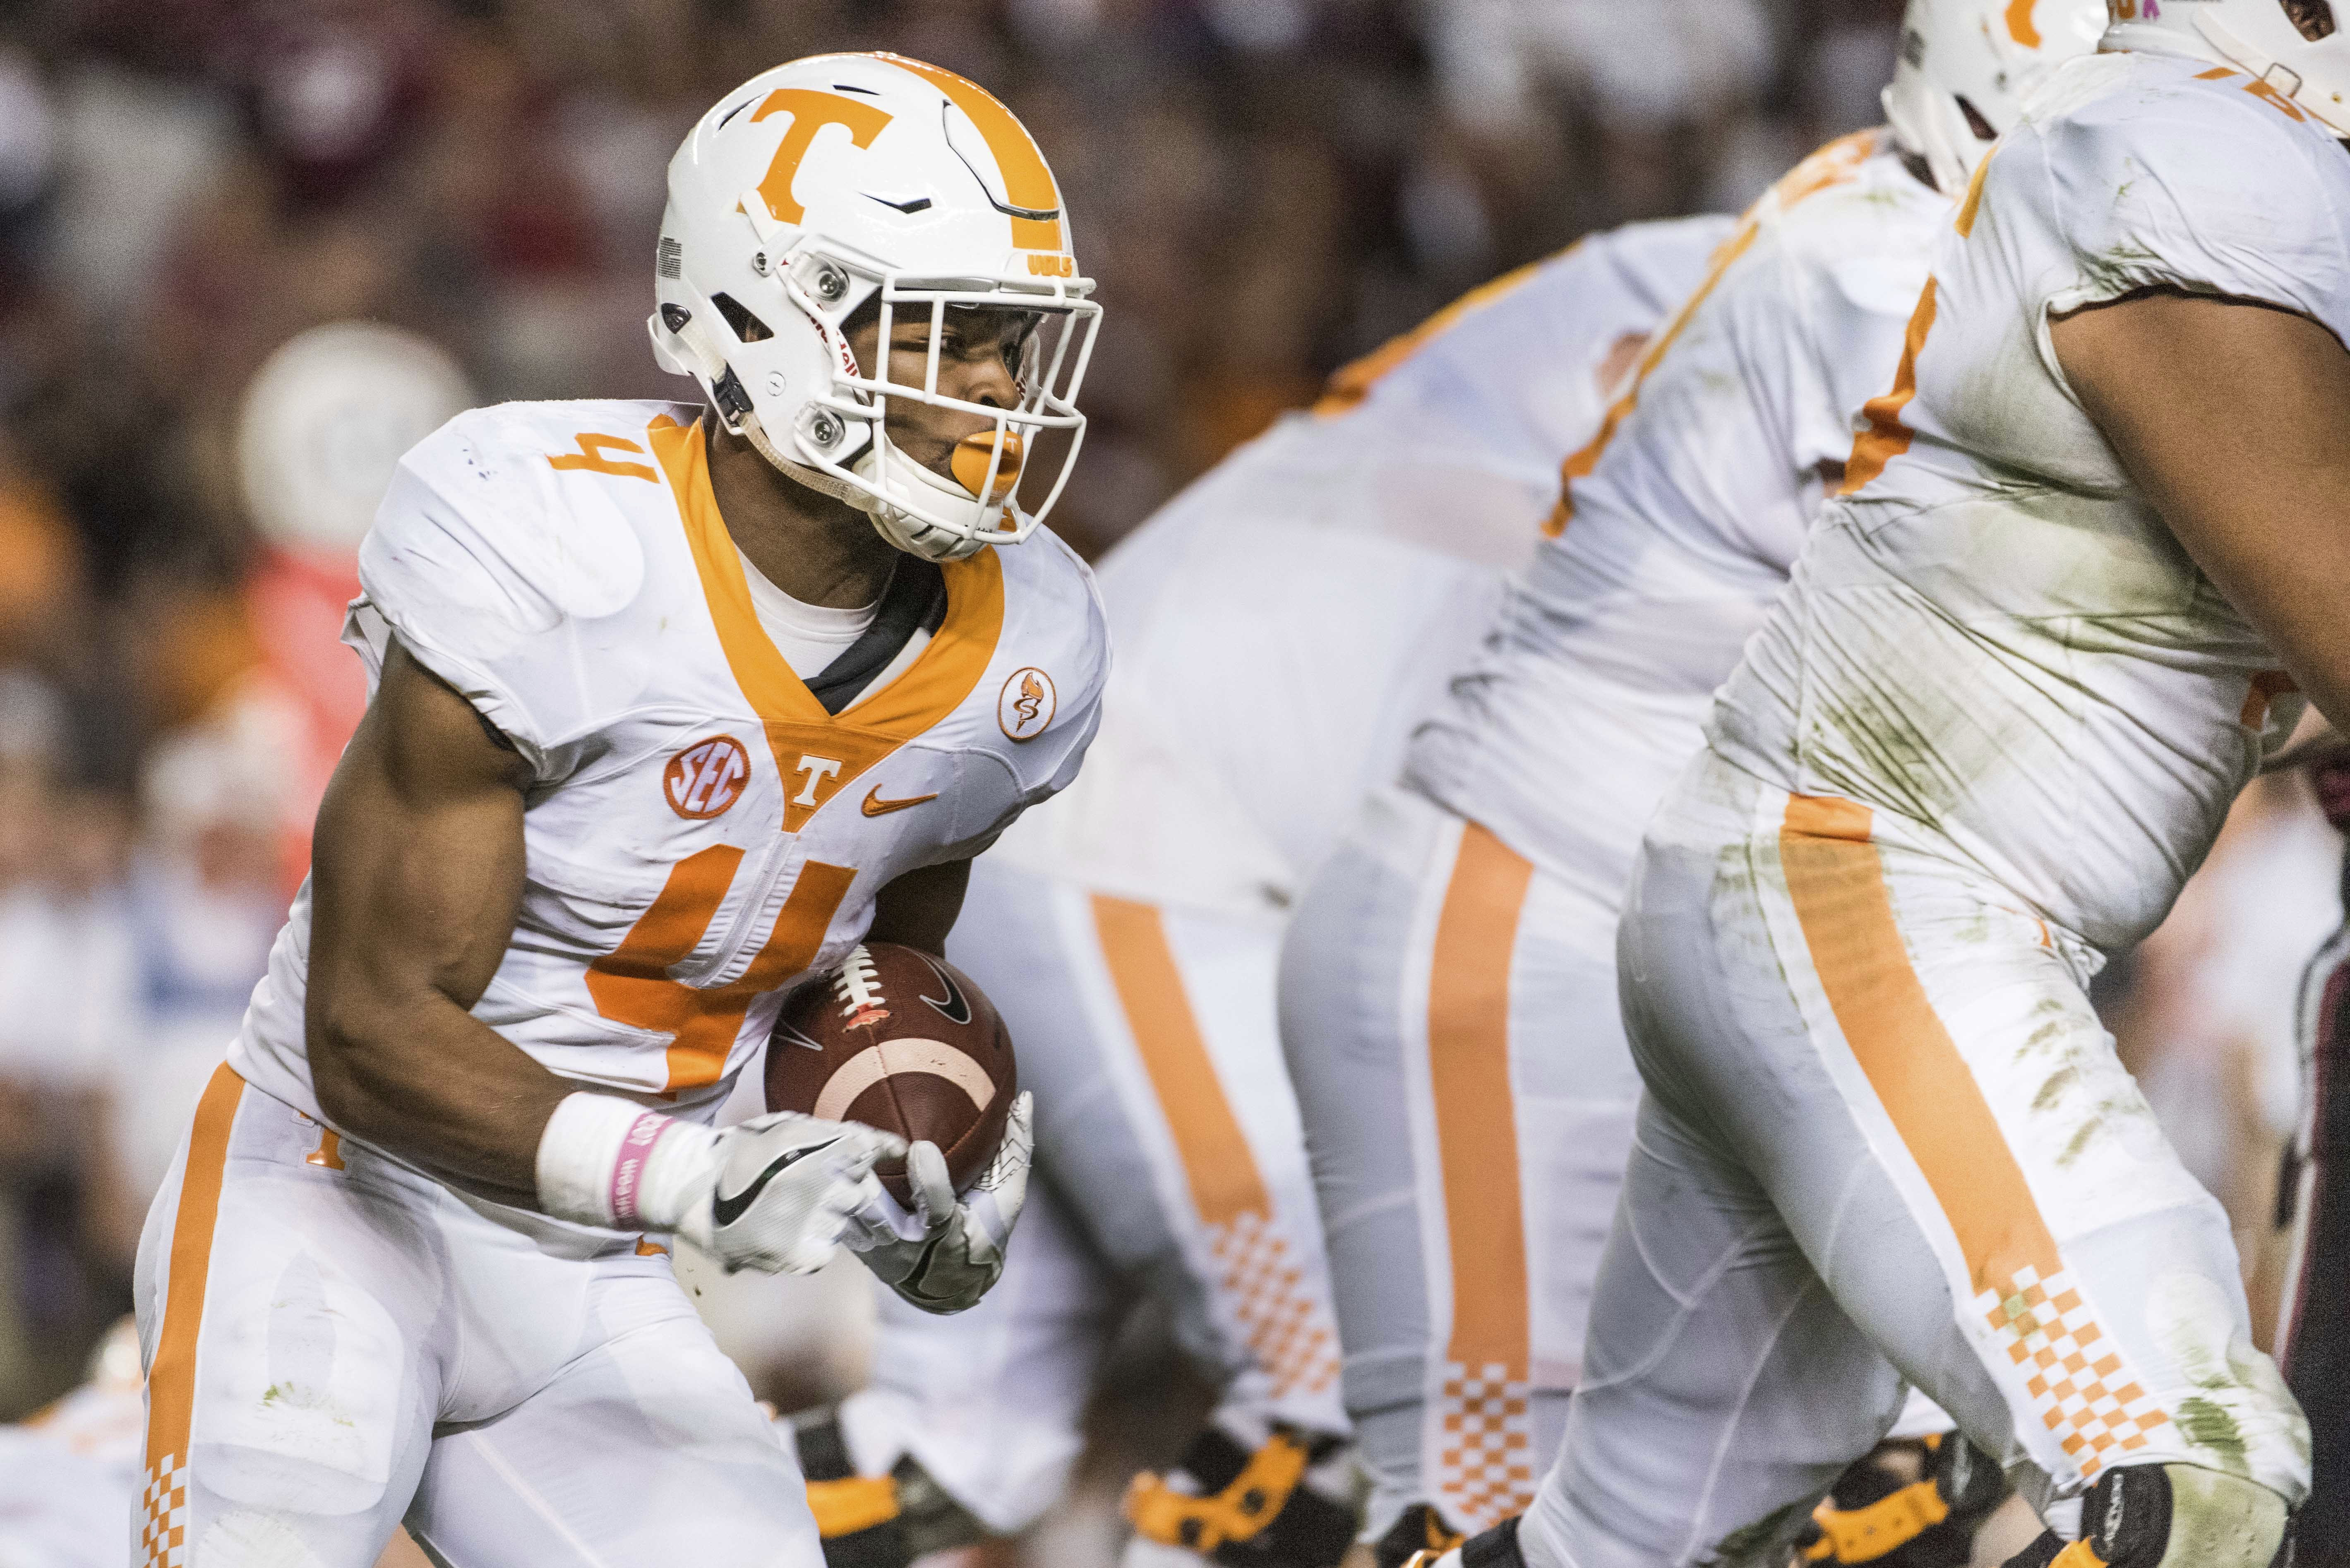 FILE -- In this Oct. 29, 2016, file photo, Tennessee running back John Kelly carries the ball against South Carolina during an NCAA college football game in Columbia, S.C. The surprising departure of Jalen Hurd and an injury to Alvin Kamara leave Tennesse